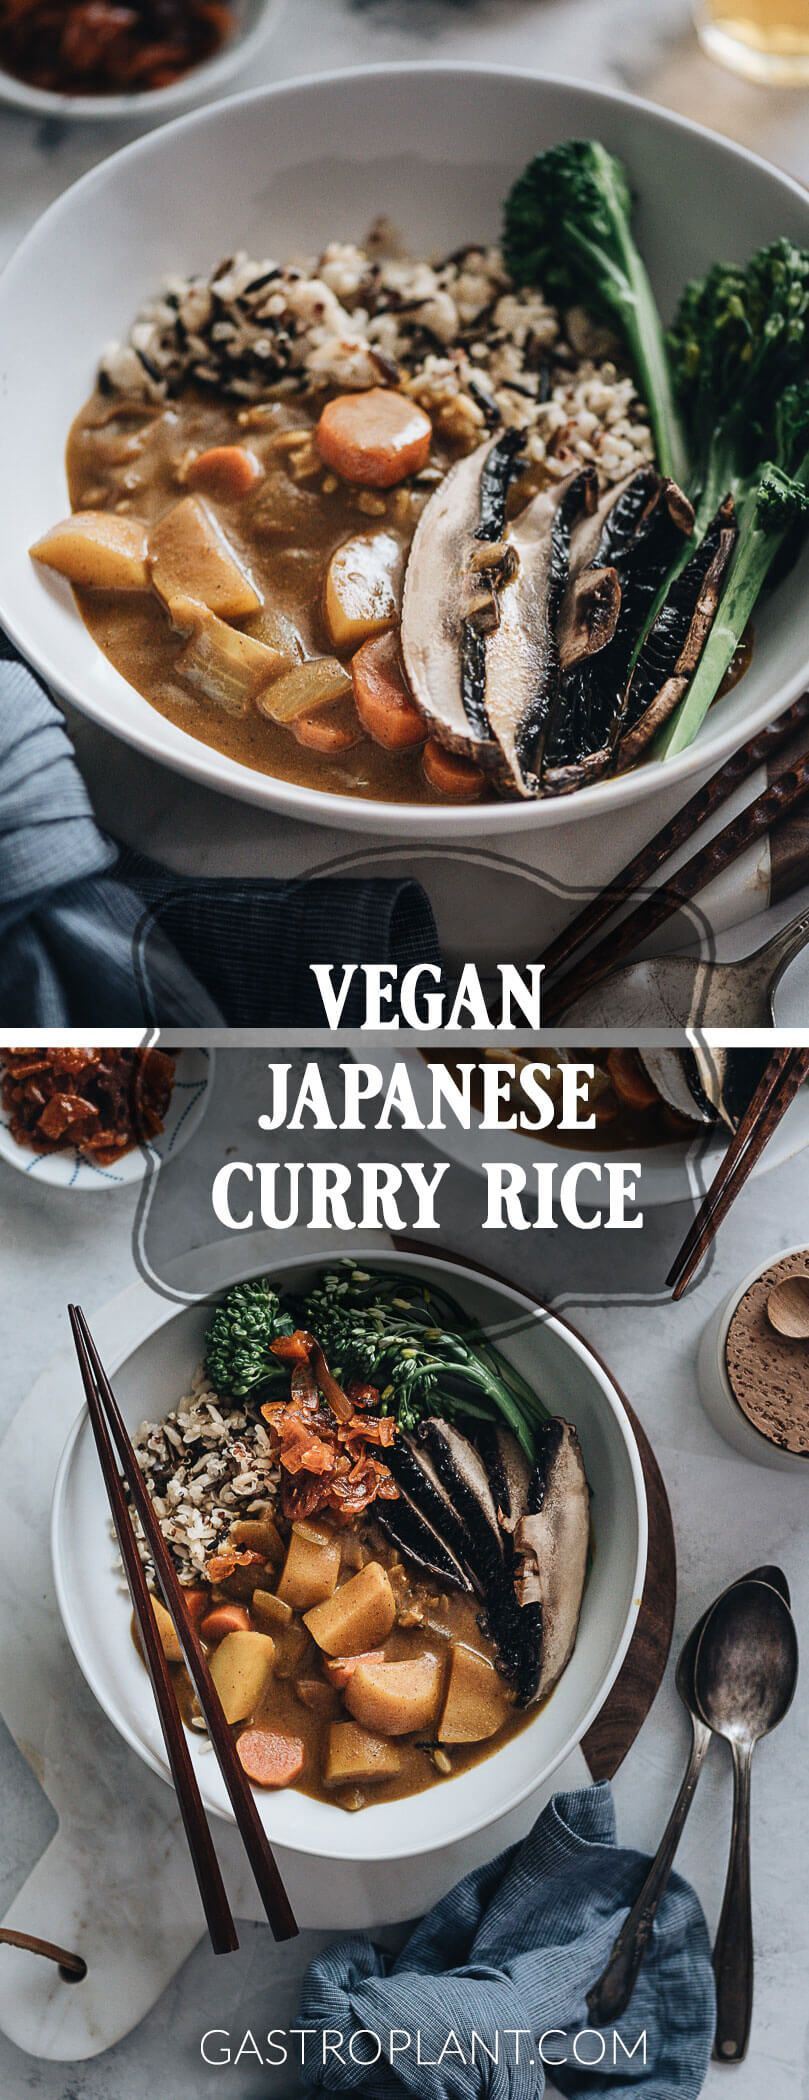 Vegan Japanese Curry Is A Plant Based Take On One Of The Most Popular Dishes In Japan This Curry Is A Vegan Japanese Vegan Japanese Food Easy Japanese Recipes